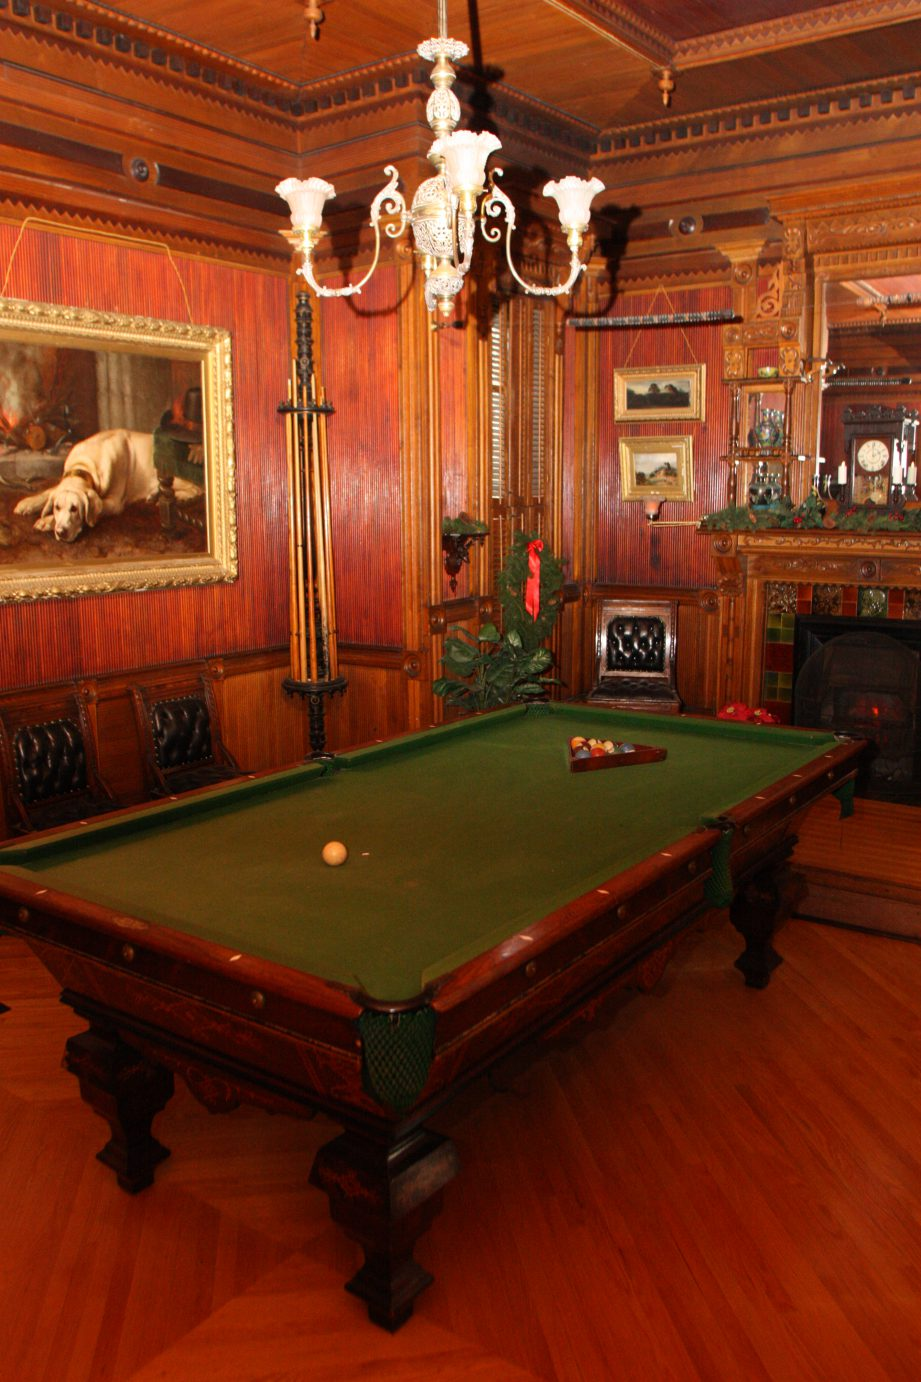 A photo of the billiards table in the site's wood panelled games room.